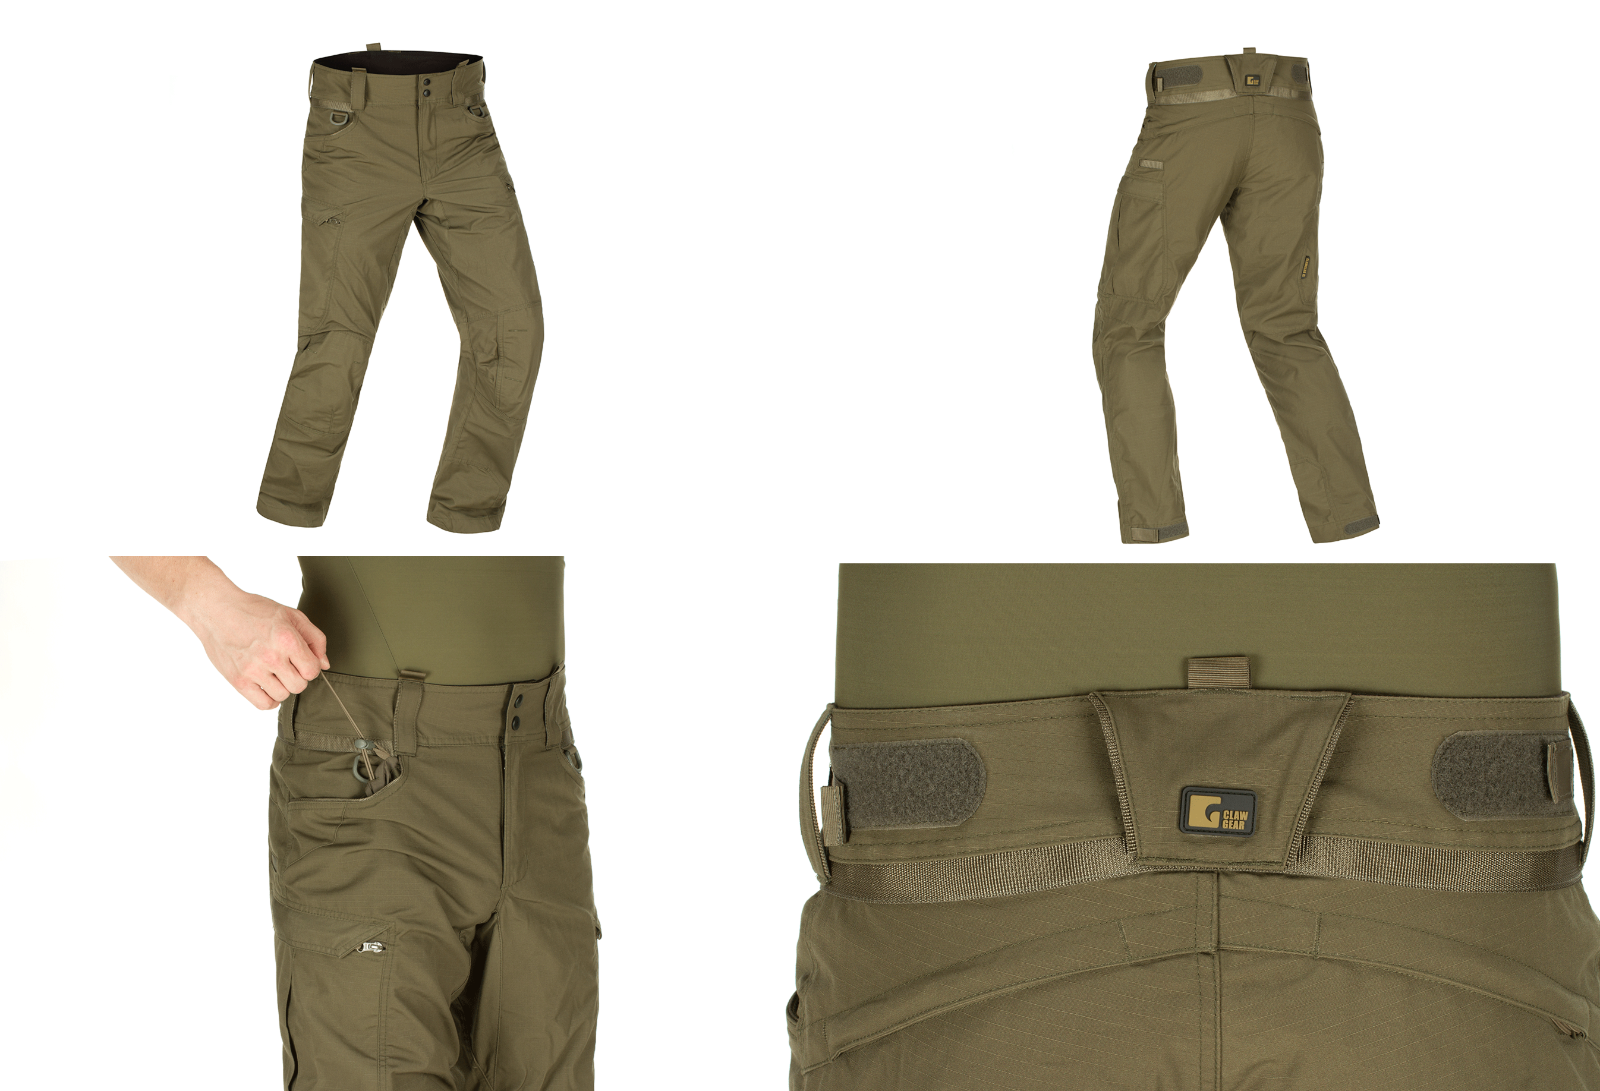 Claw Gear Operator Pantaloni Combat Pant Knee Verde Green Ral7013 Size 54 R -  - ebay.it